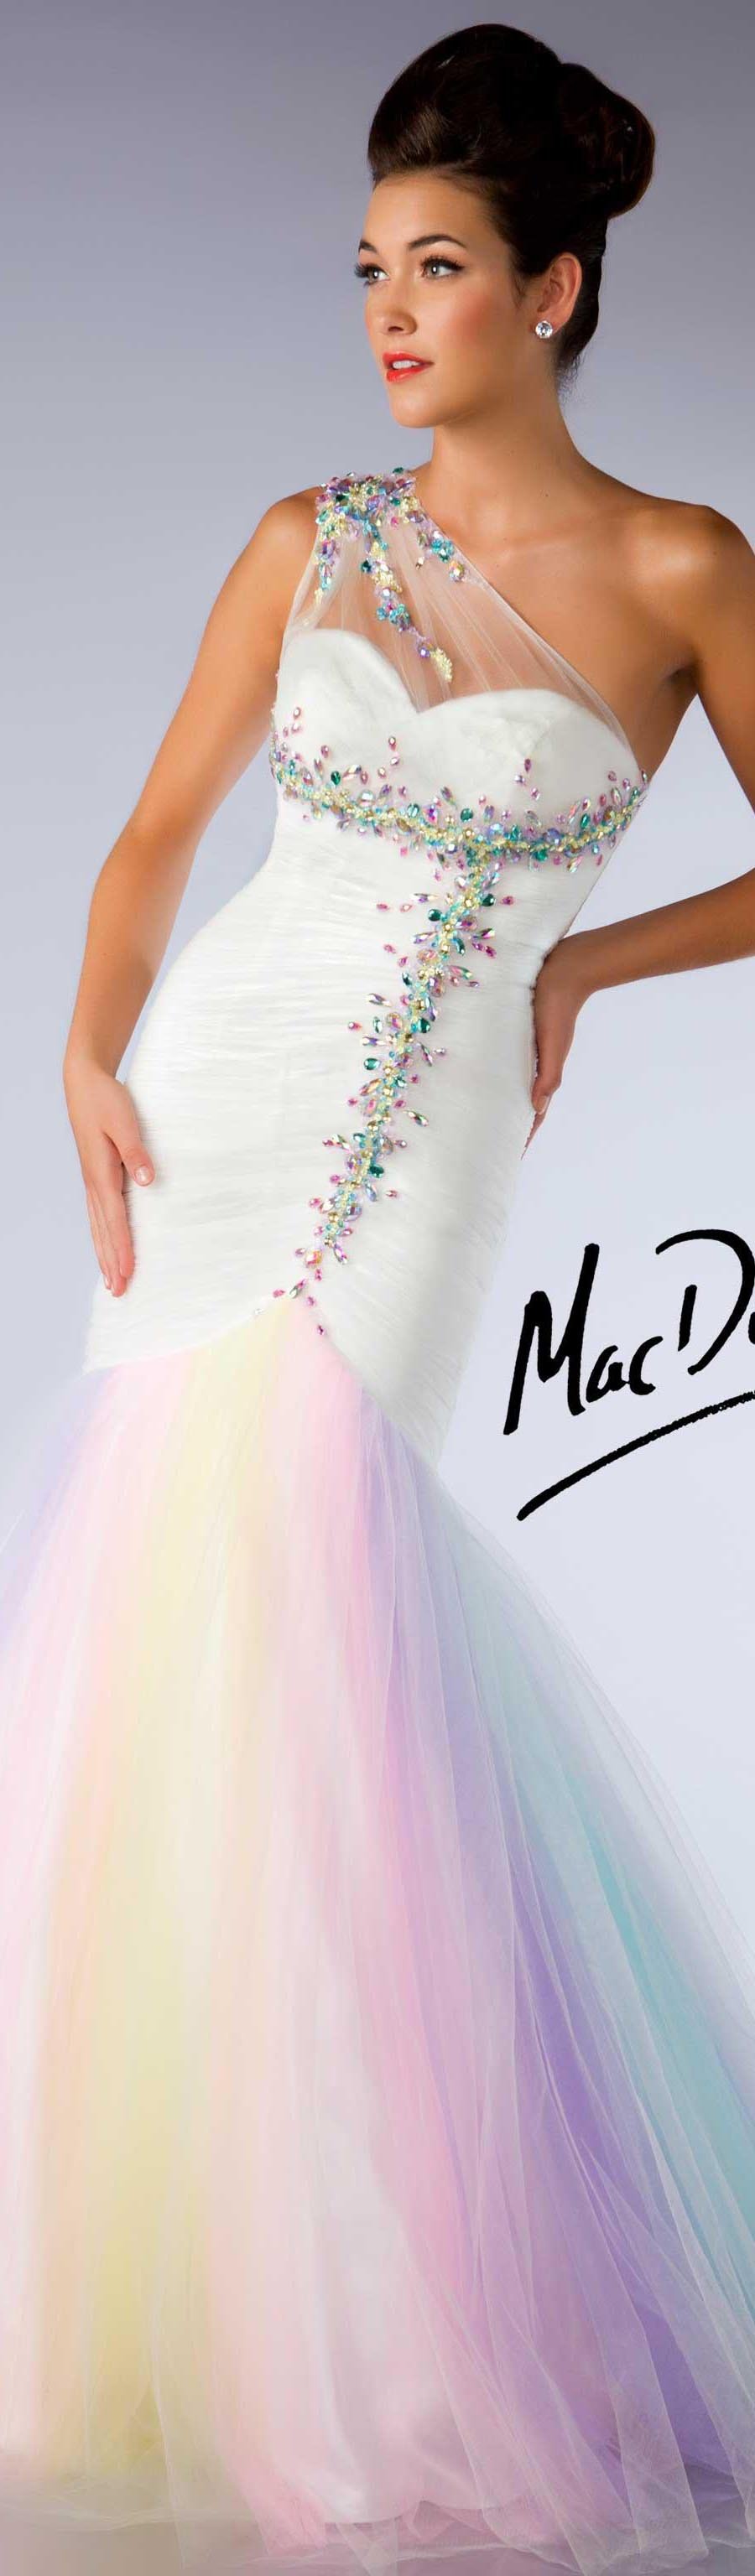 Mac duggal couture dress pastel oneshoulder white pastel long